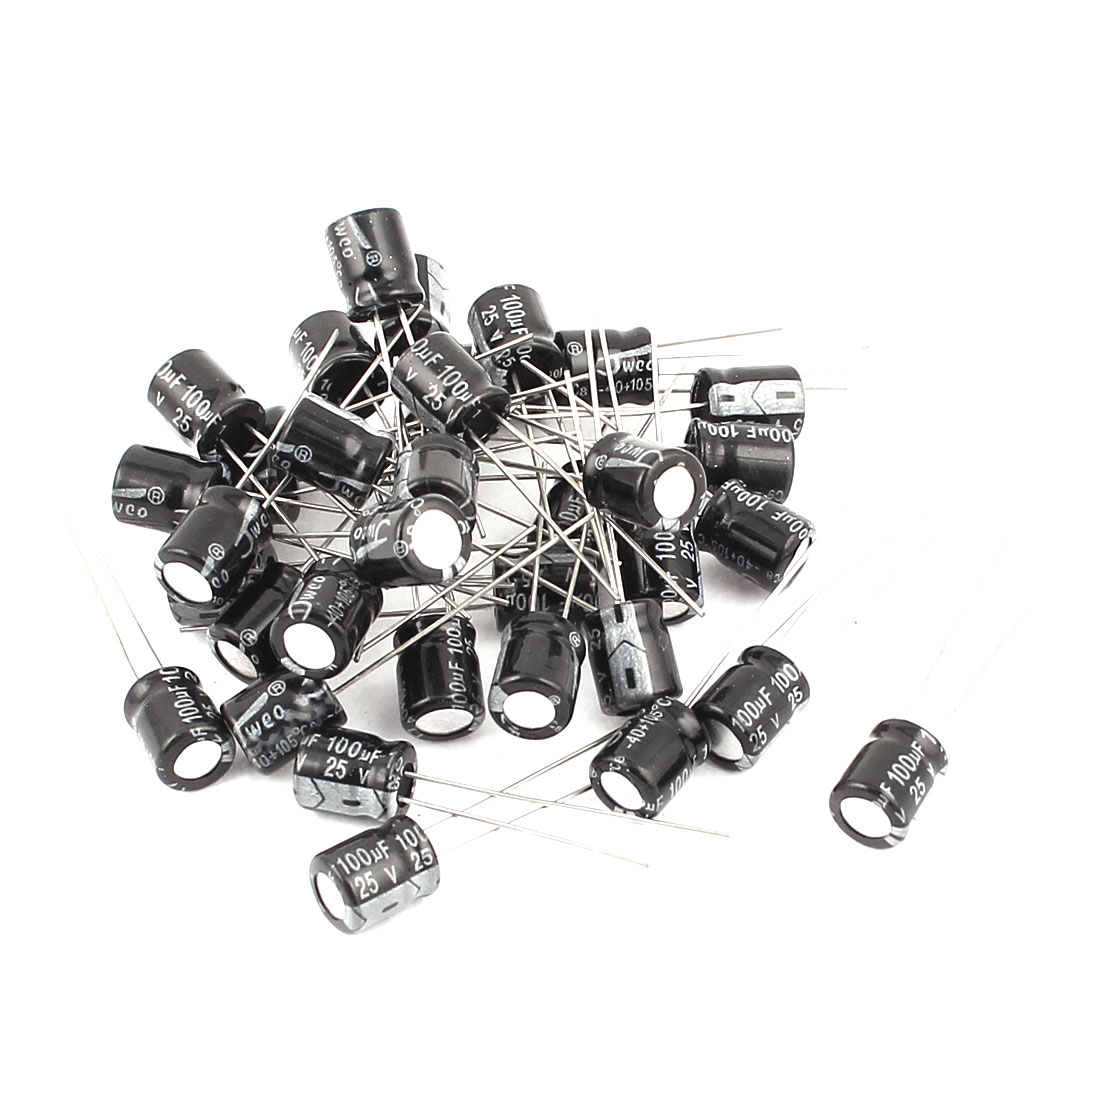 35PCS 100uF 25V Radial Leads Aluminum Electrolytic Capacitors 6.5 x 8mm